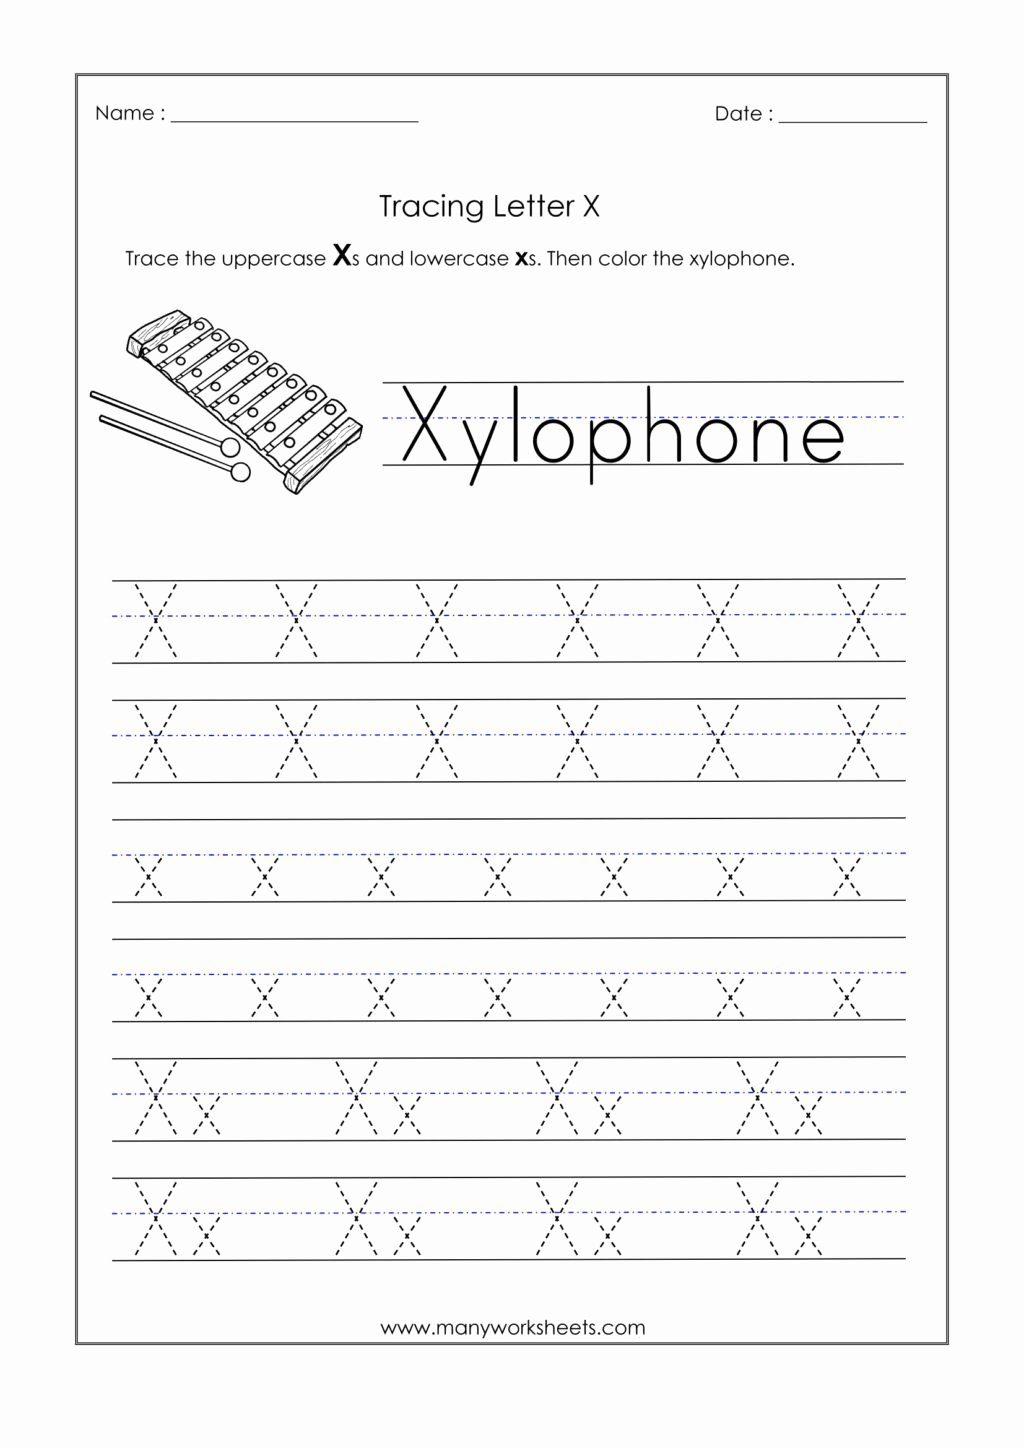 Letter X Worksheets for Preschoolers Kids Worksheet Alphabetiting Sheets Letter X Tracing Worksheet